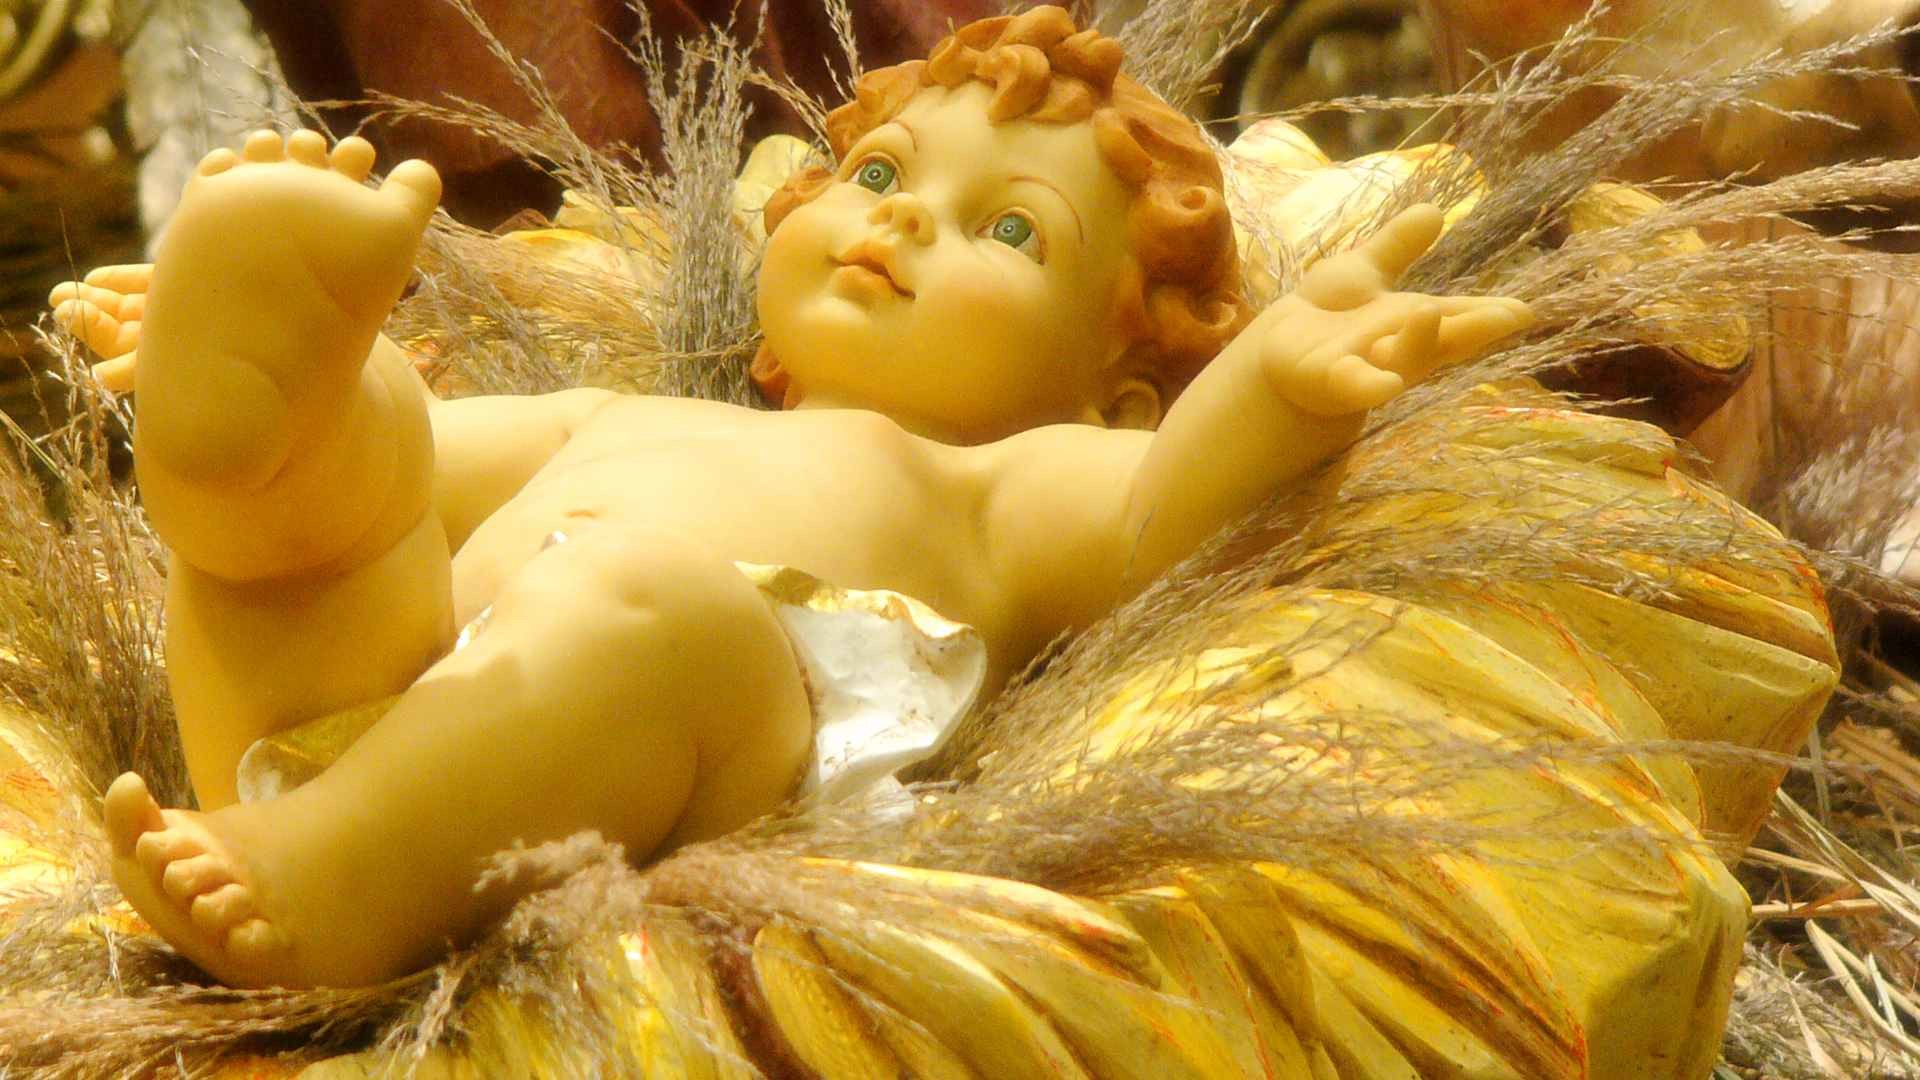 Photo Of Baby Jesus – HD Wallpapers and Pictures